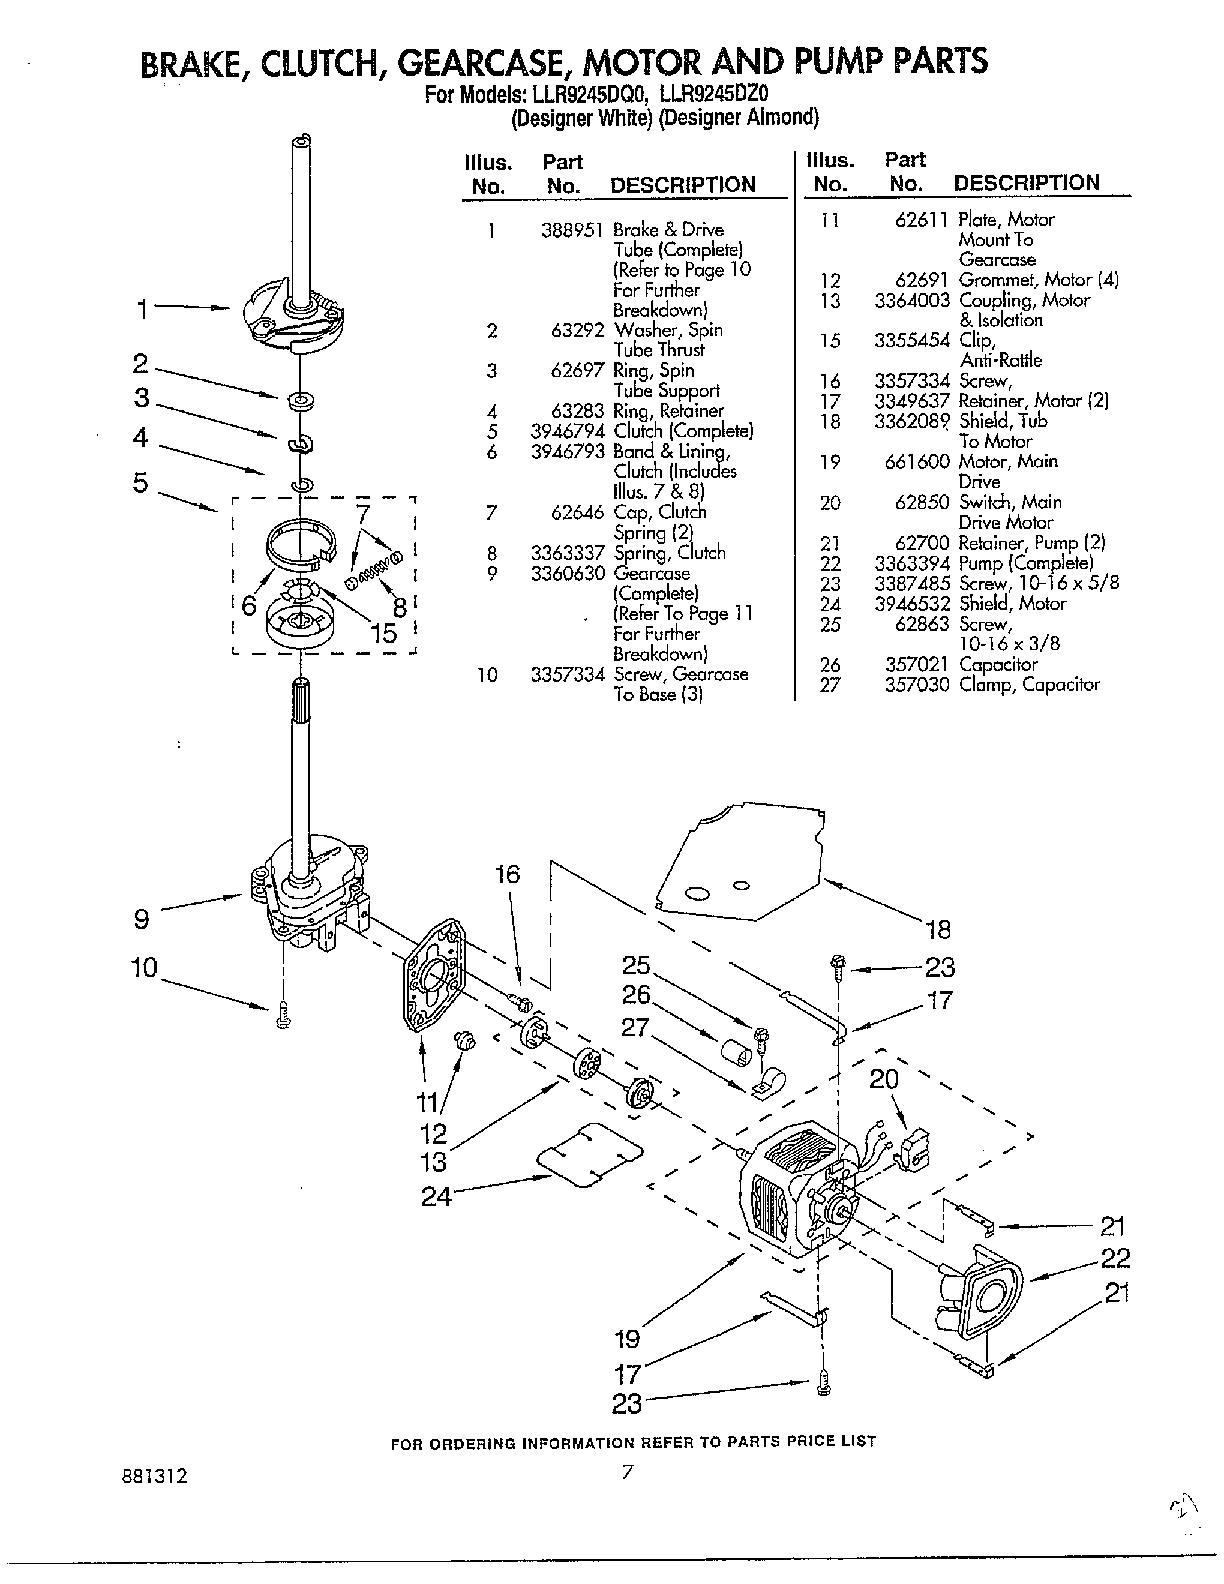 small resolution of whirlpool llr9245dqo brake clutch gearcase motor and pump diagram